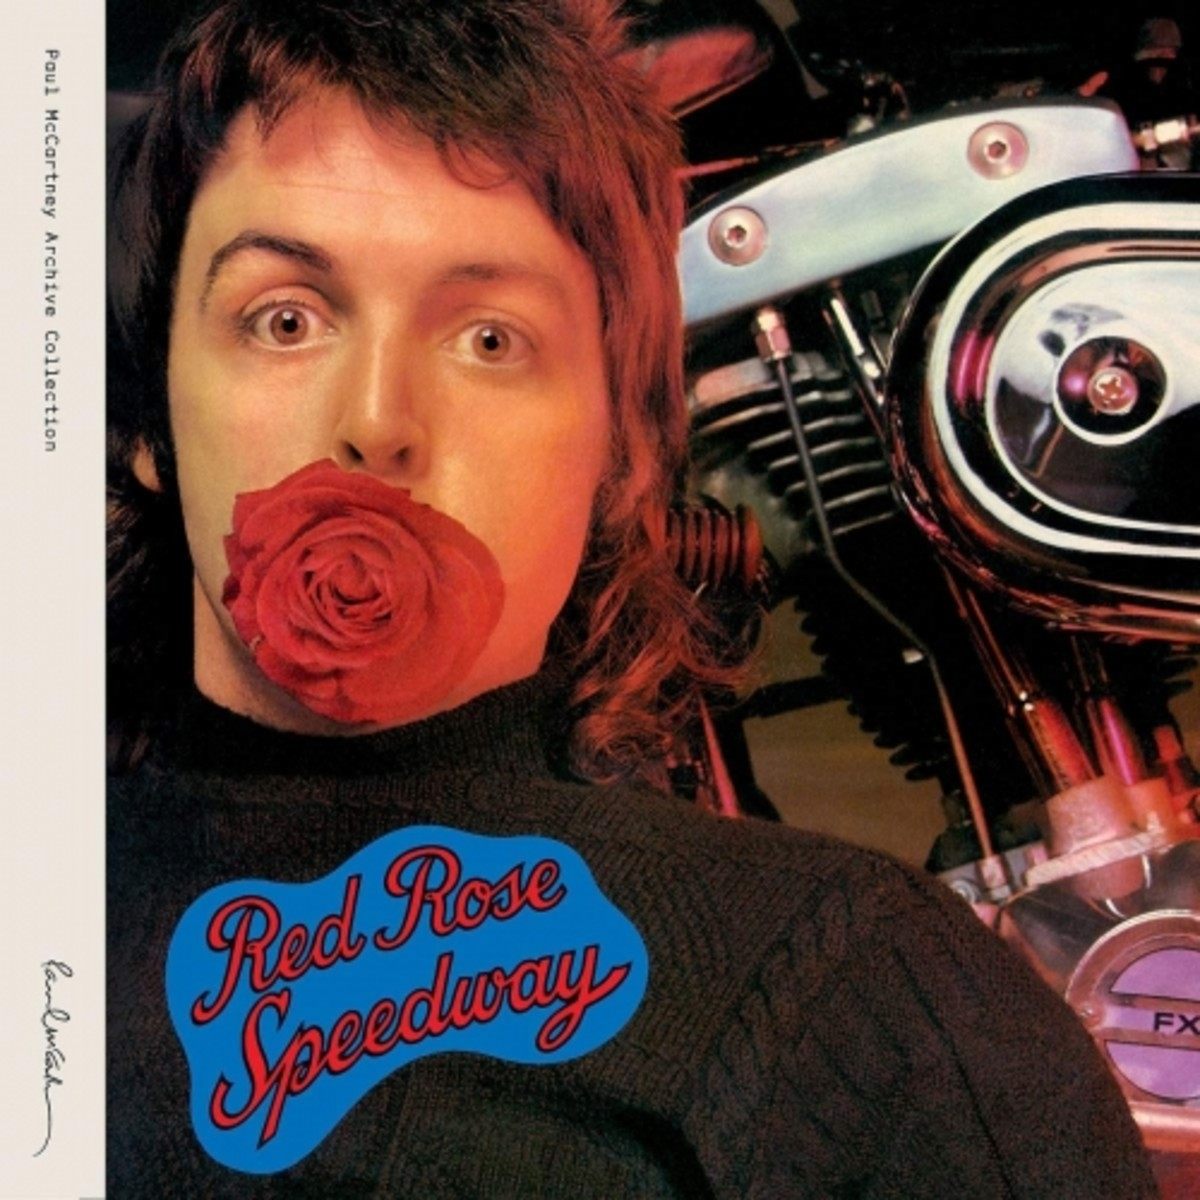 paul-mccartney-and-wings-wild-life-and-red-rose-speedway-archive-collection-2cd-reviews